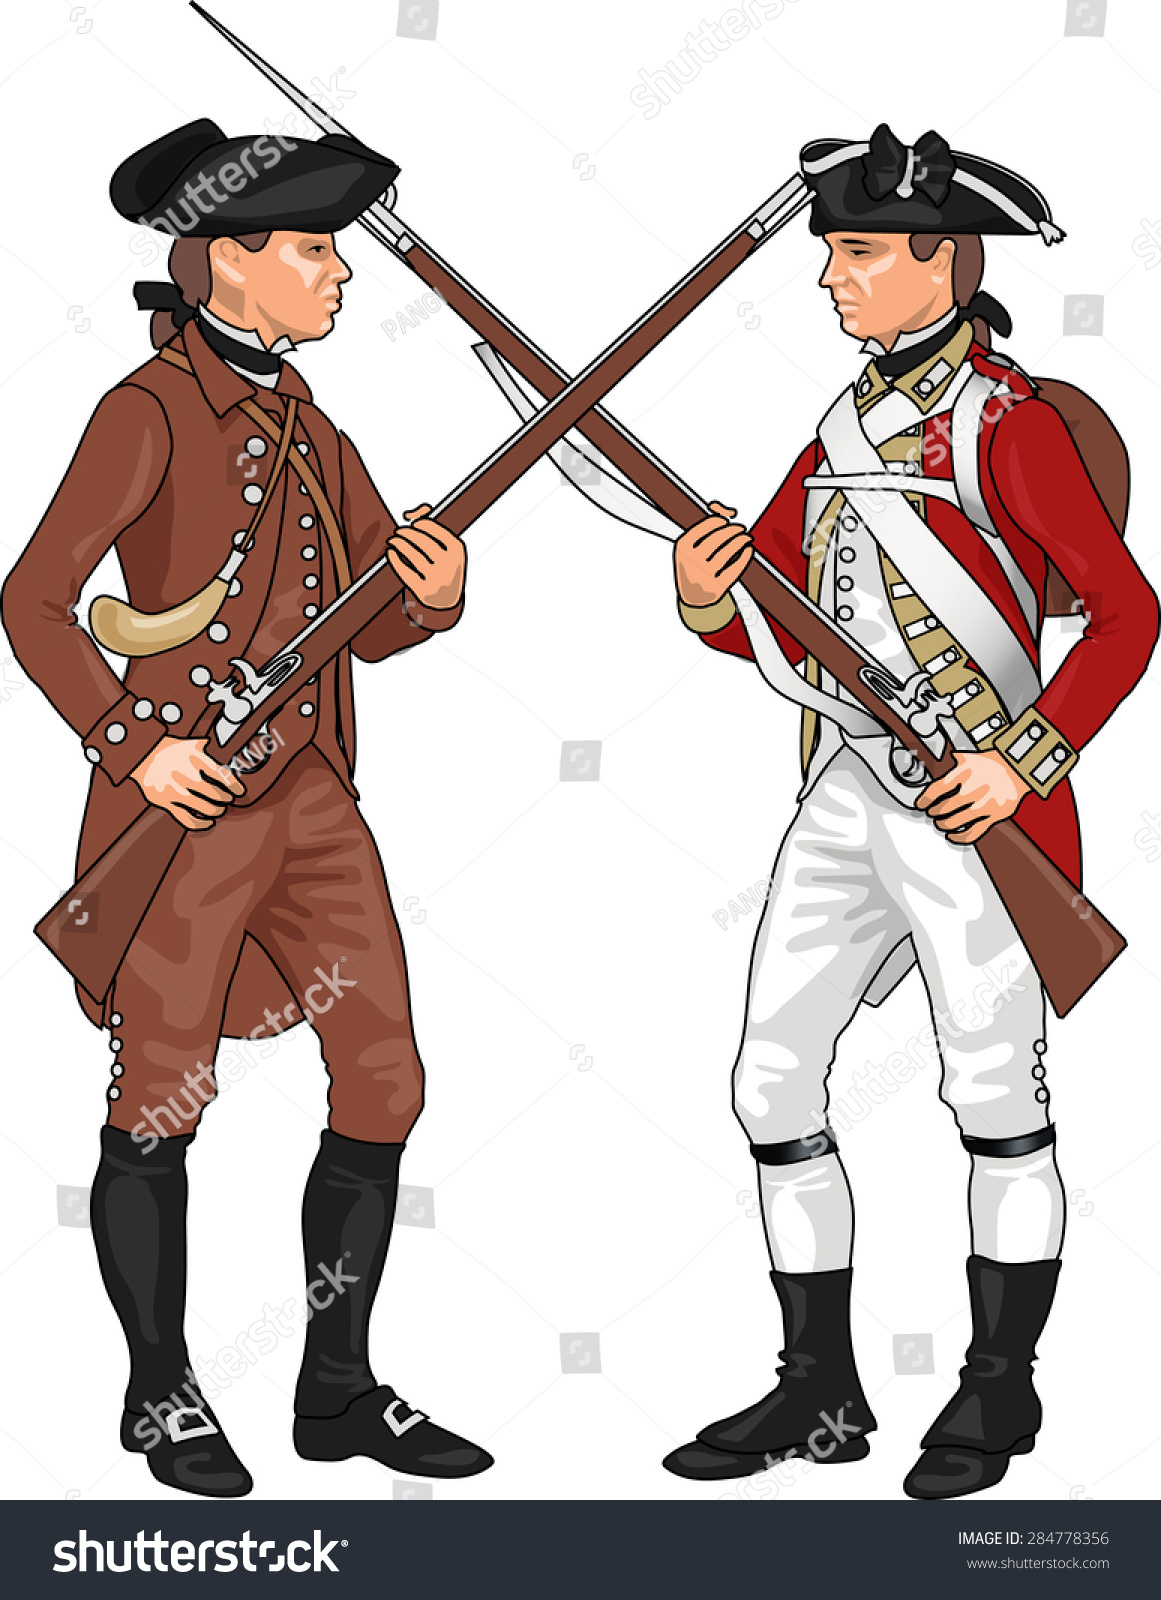 how to draw a british soldier from the revolutionary war